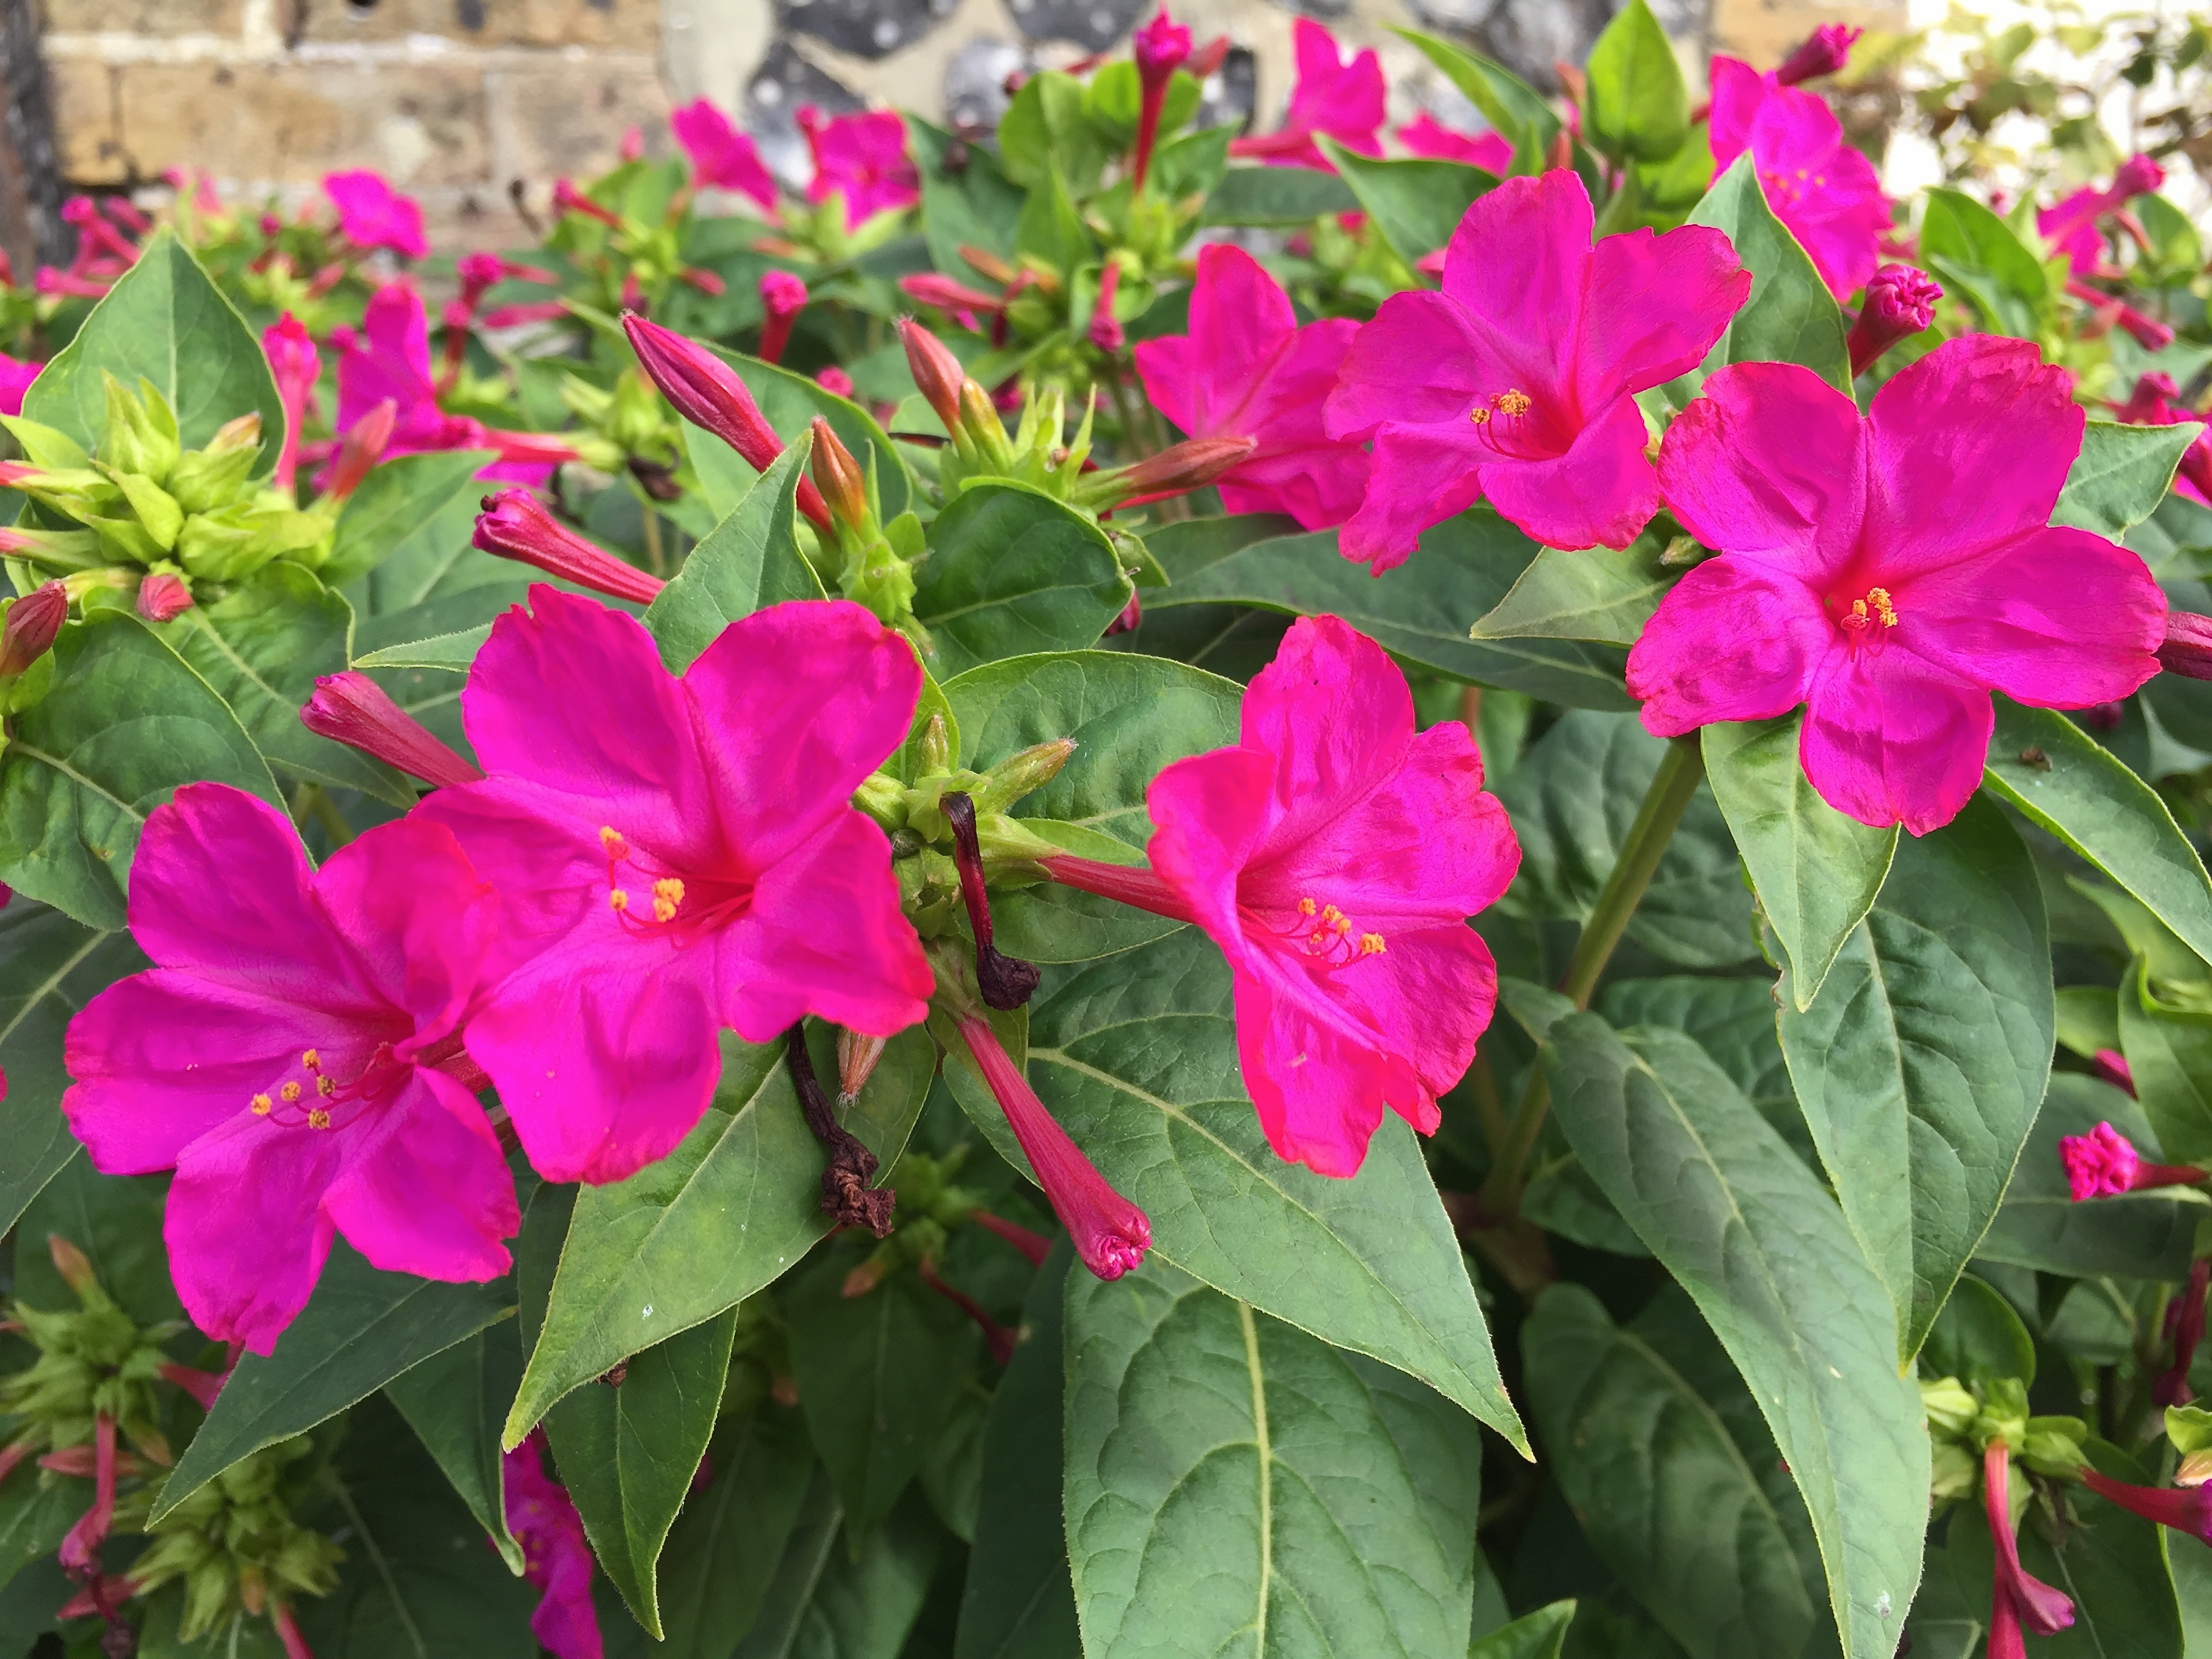 Mirabilis jalapa 'Limelight' | Log House Plants